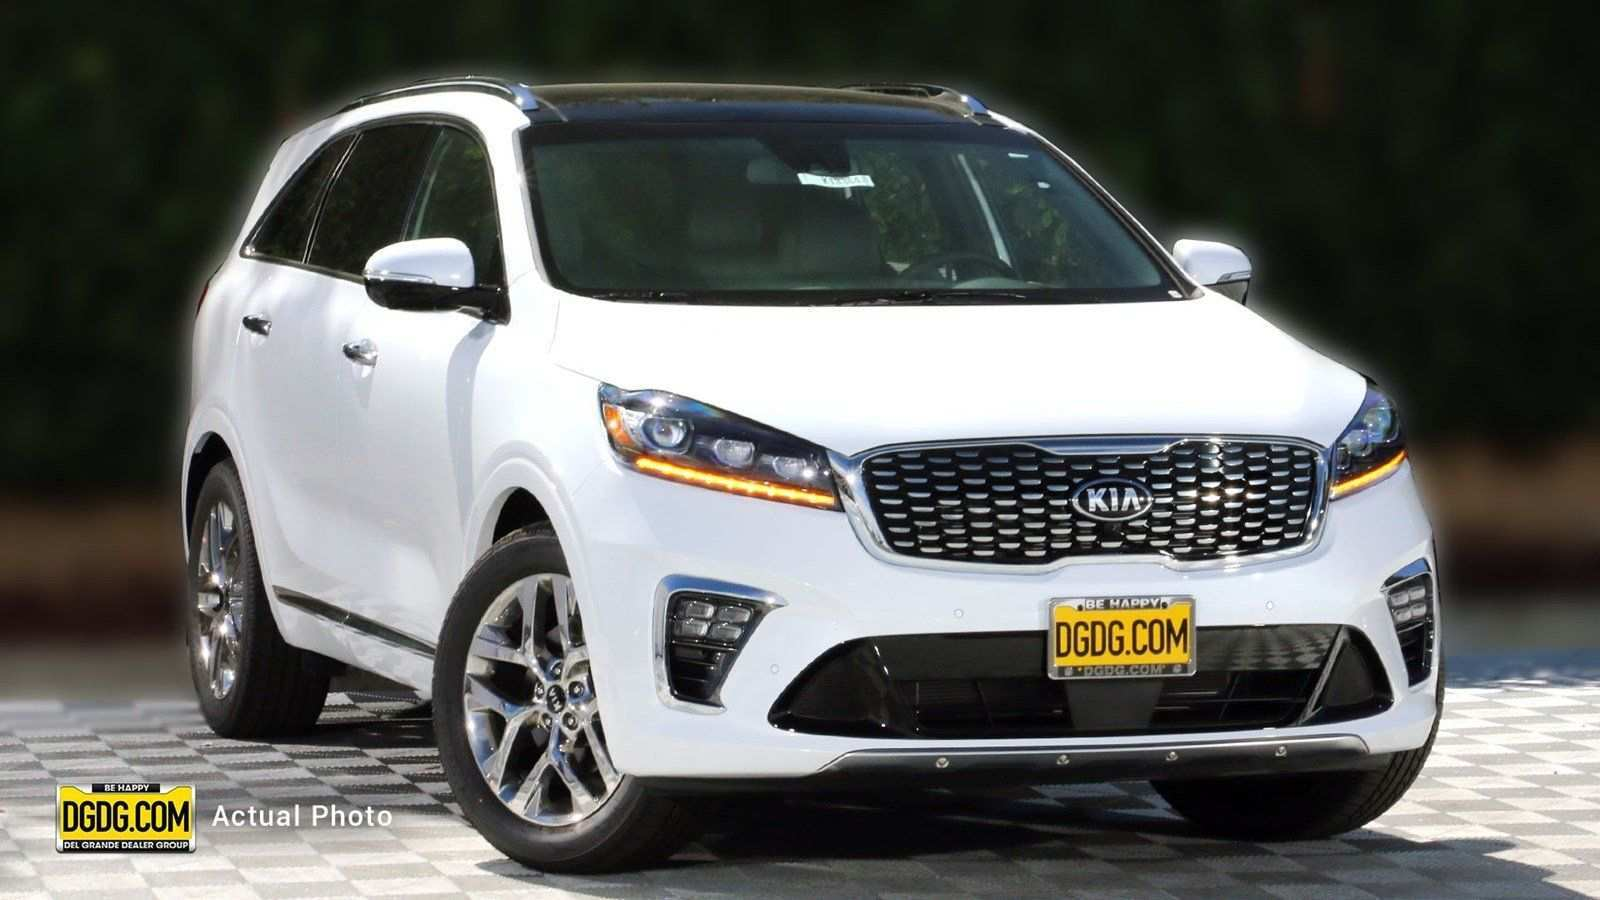 57 New 2020 Kia Sorento Owners Manual Photos with 2020 Kia Sorento Owners Manual